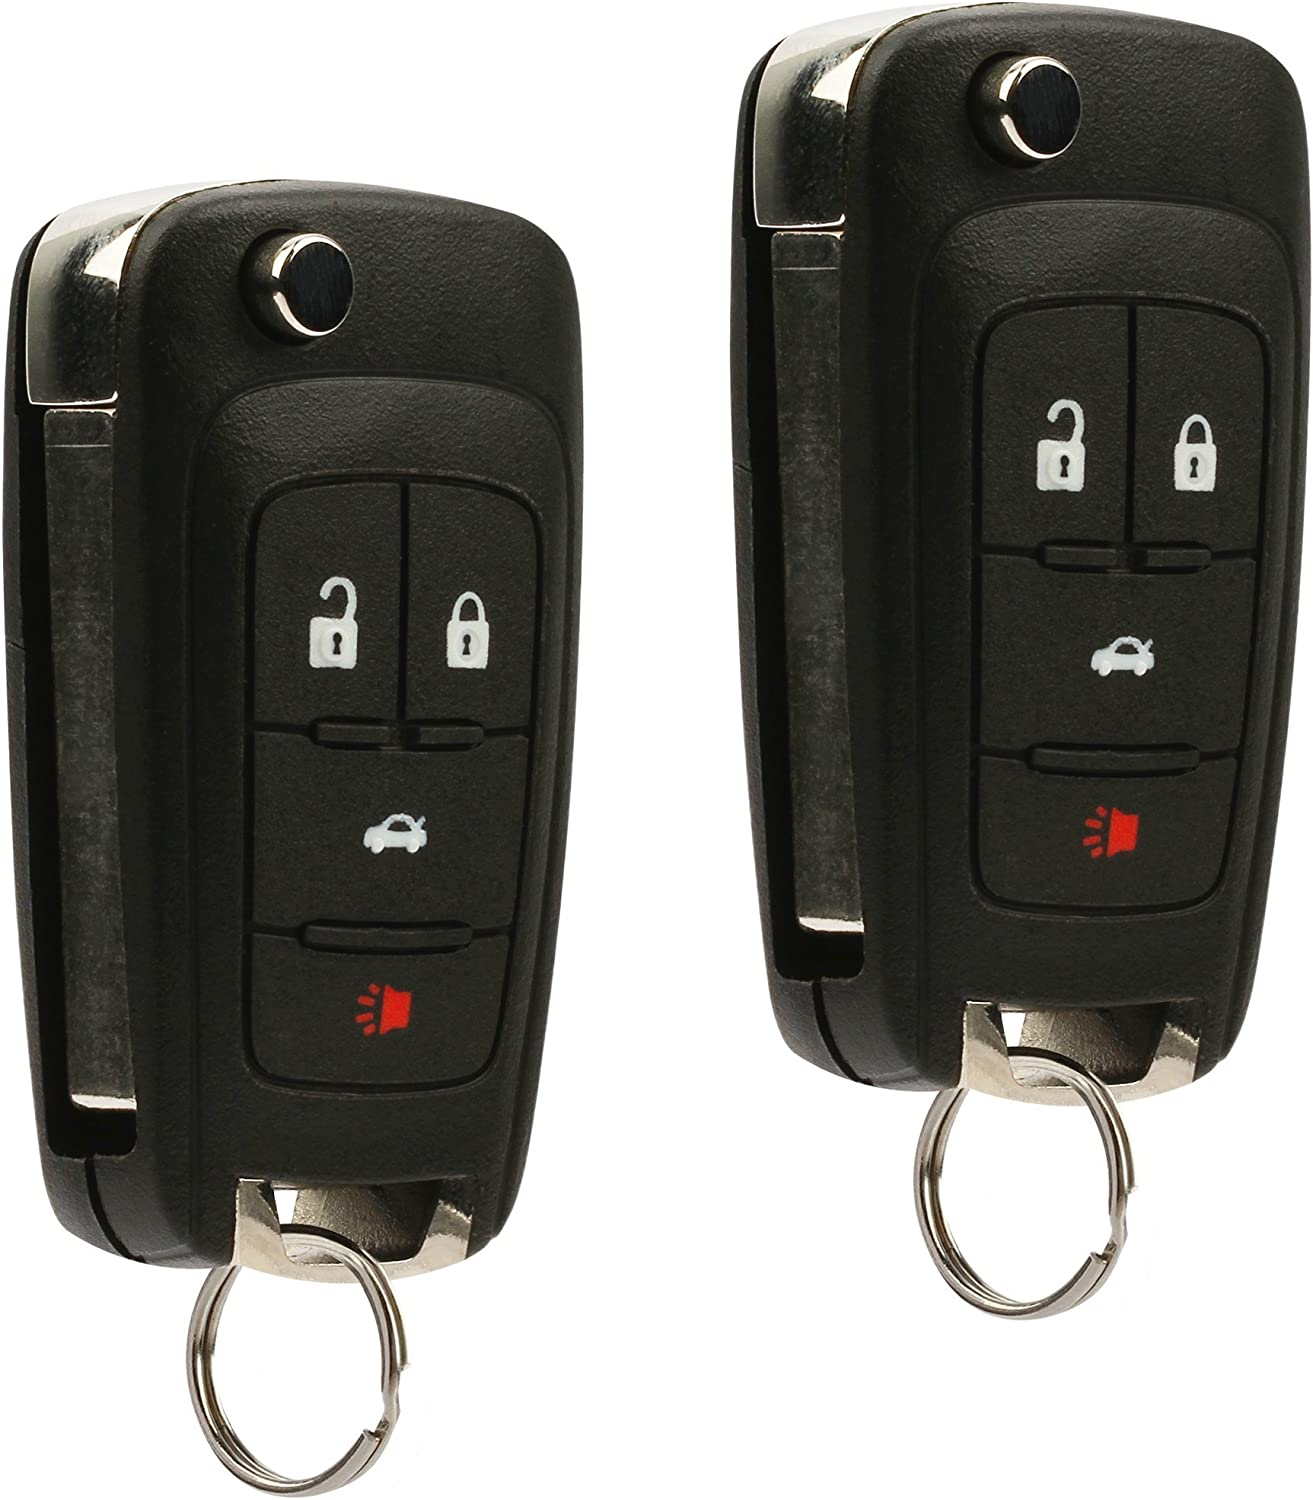 4 Button Car Remote Flip Key Fob Control For Buick For GMC For Chevy